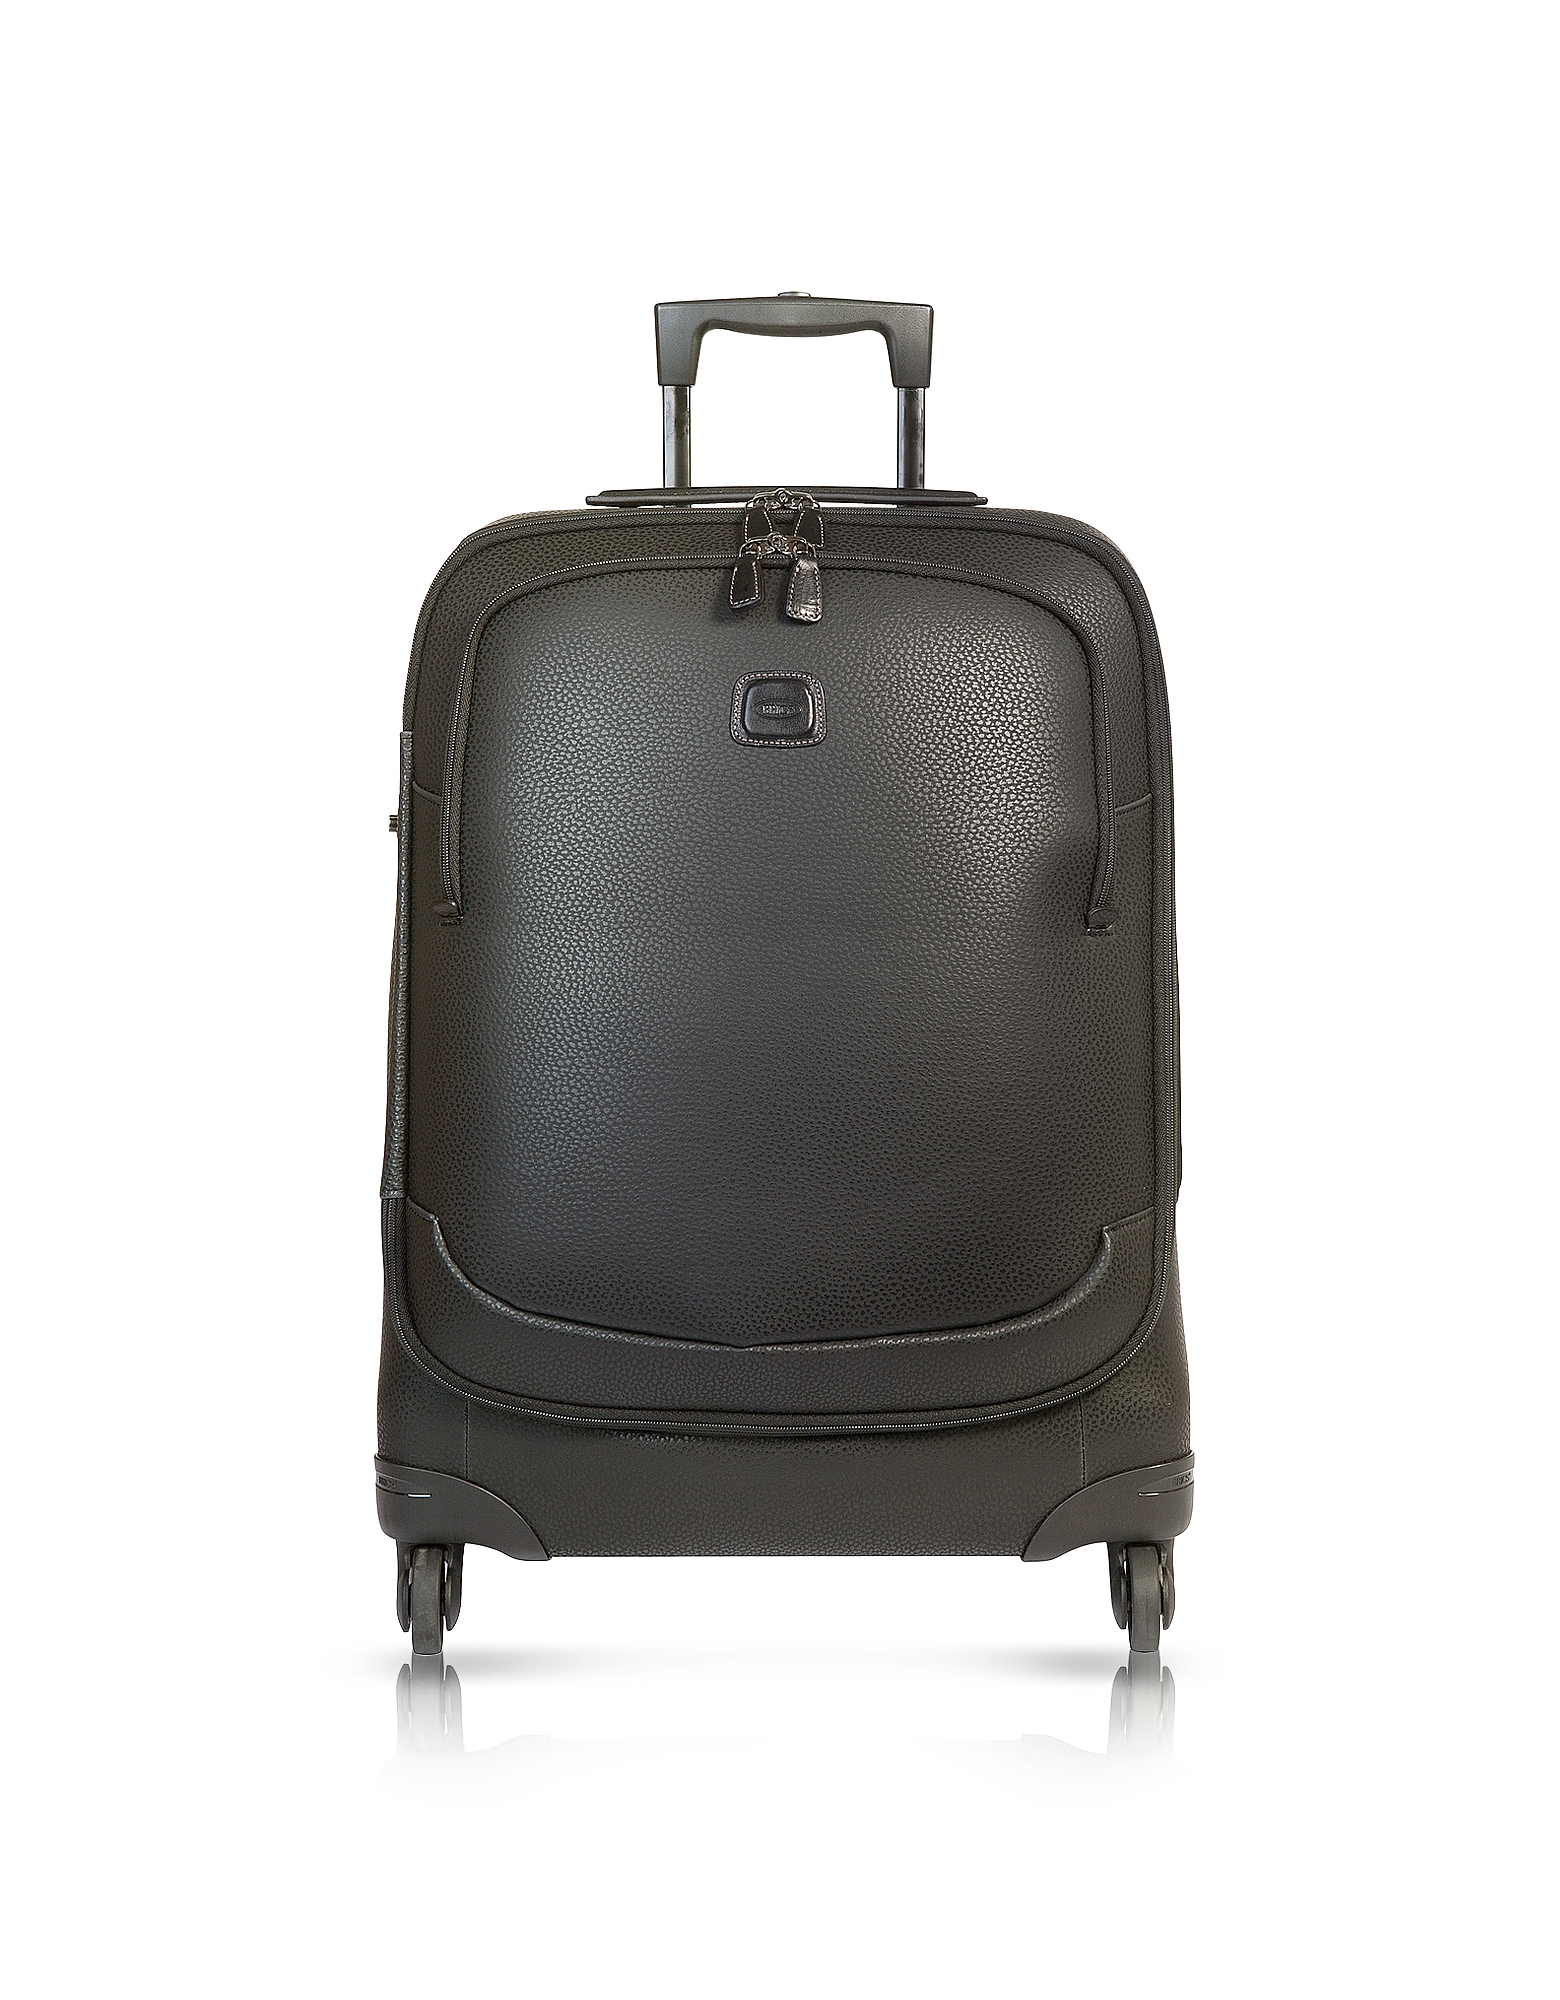 Bric's Travel Bags, Magellano Black 26in Ultra Light Suitcase